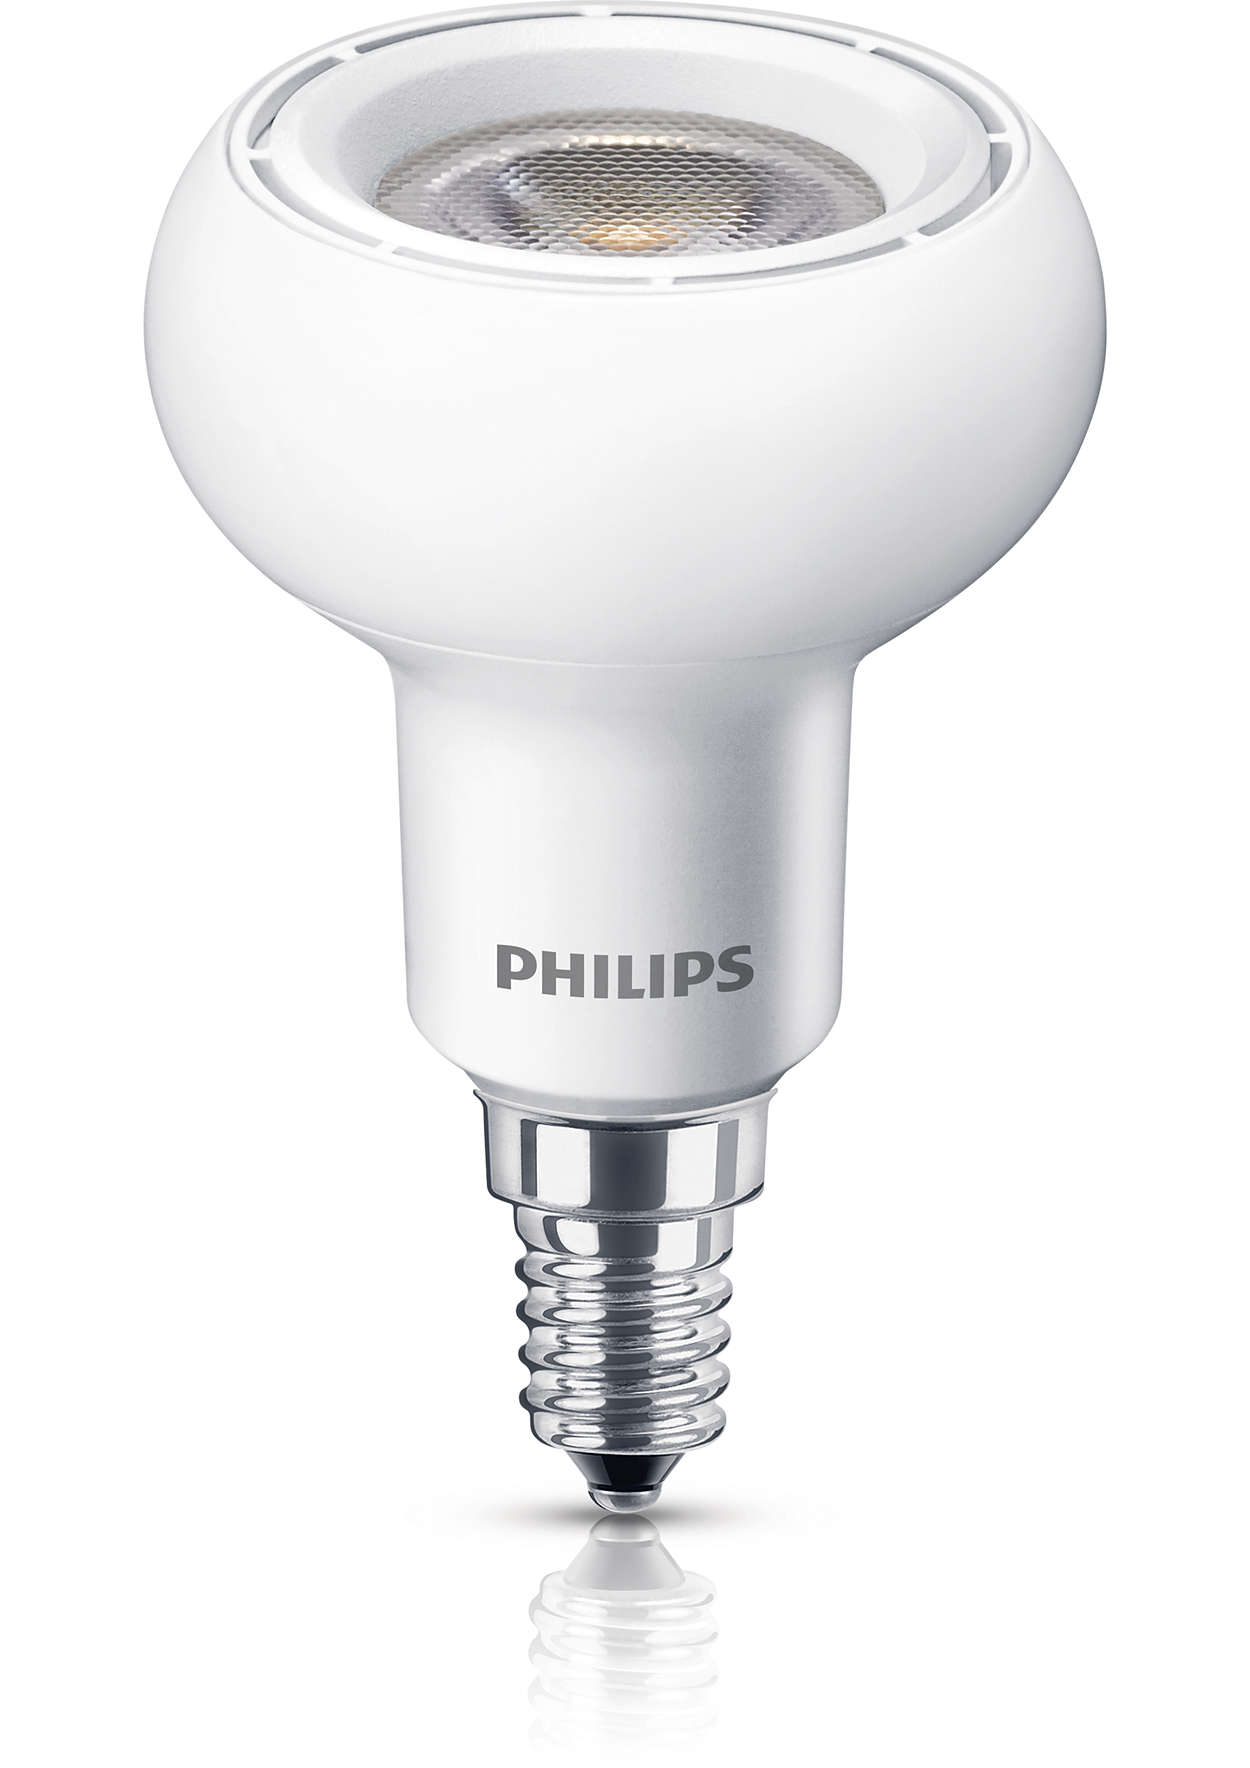 LED Reflektor (dimmbar) 8718291192923 | Philips